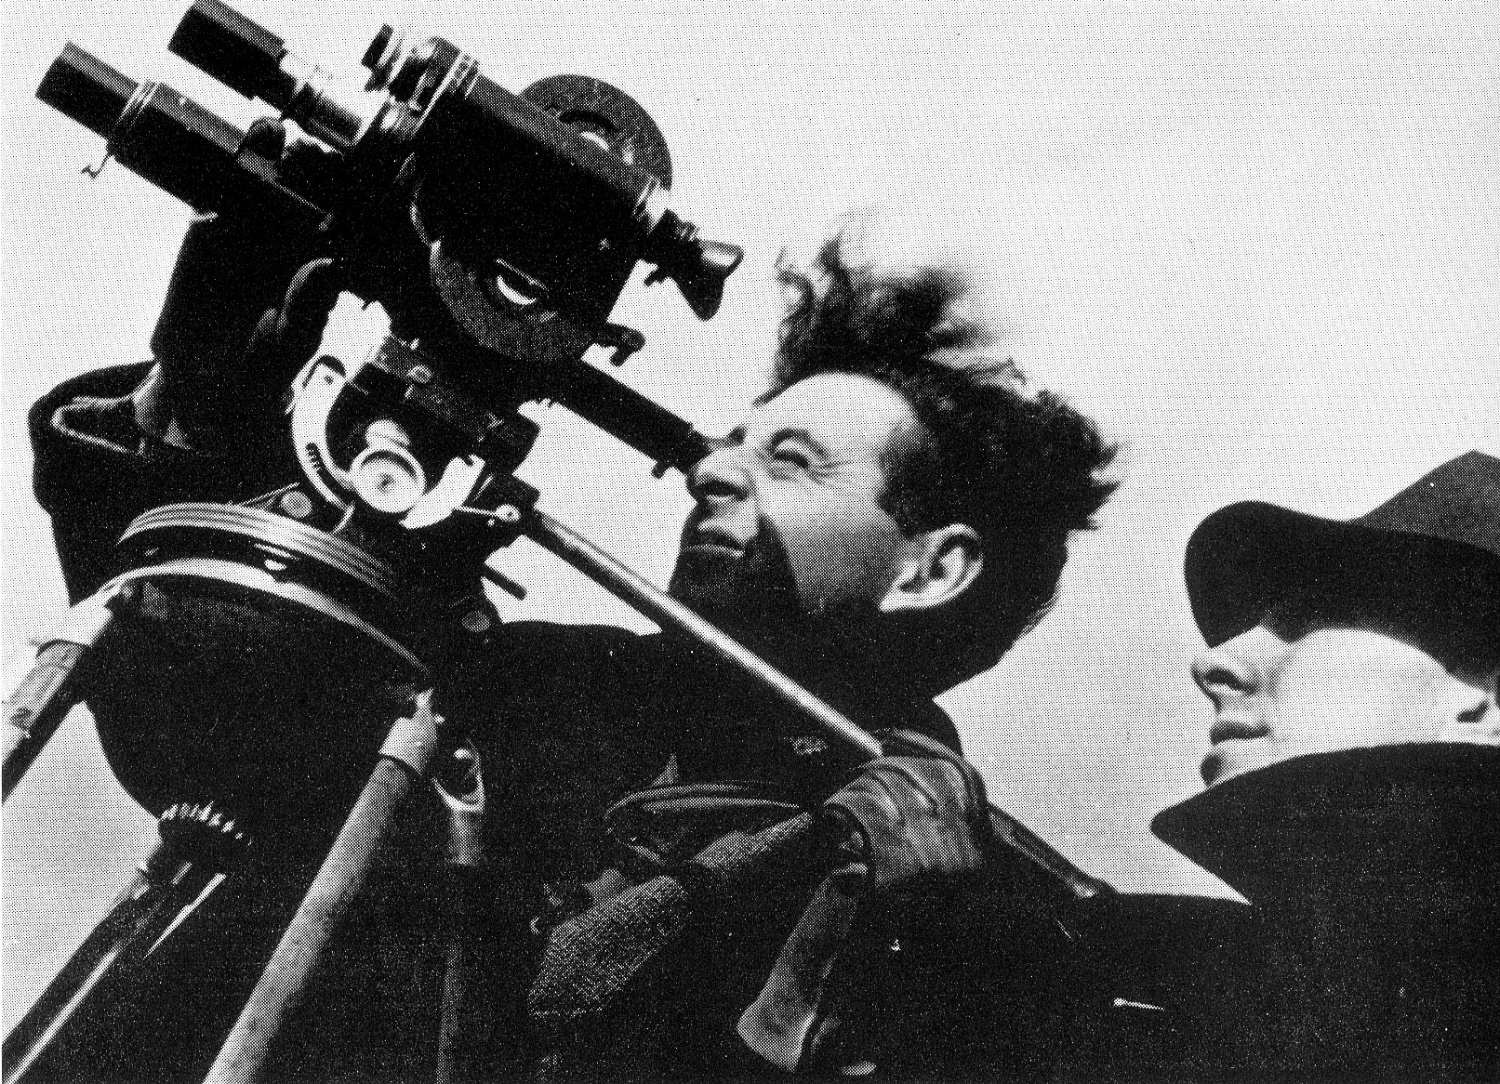 Two men with movie camera